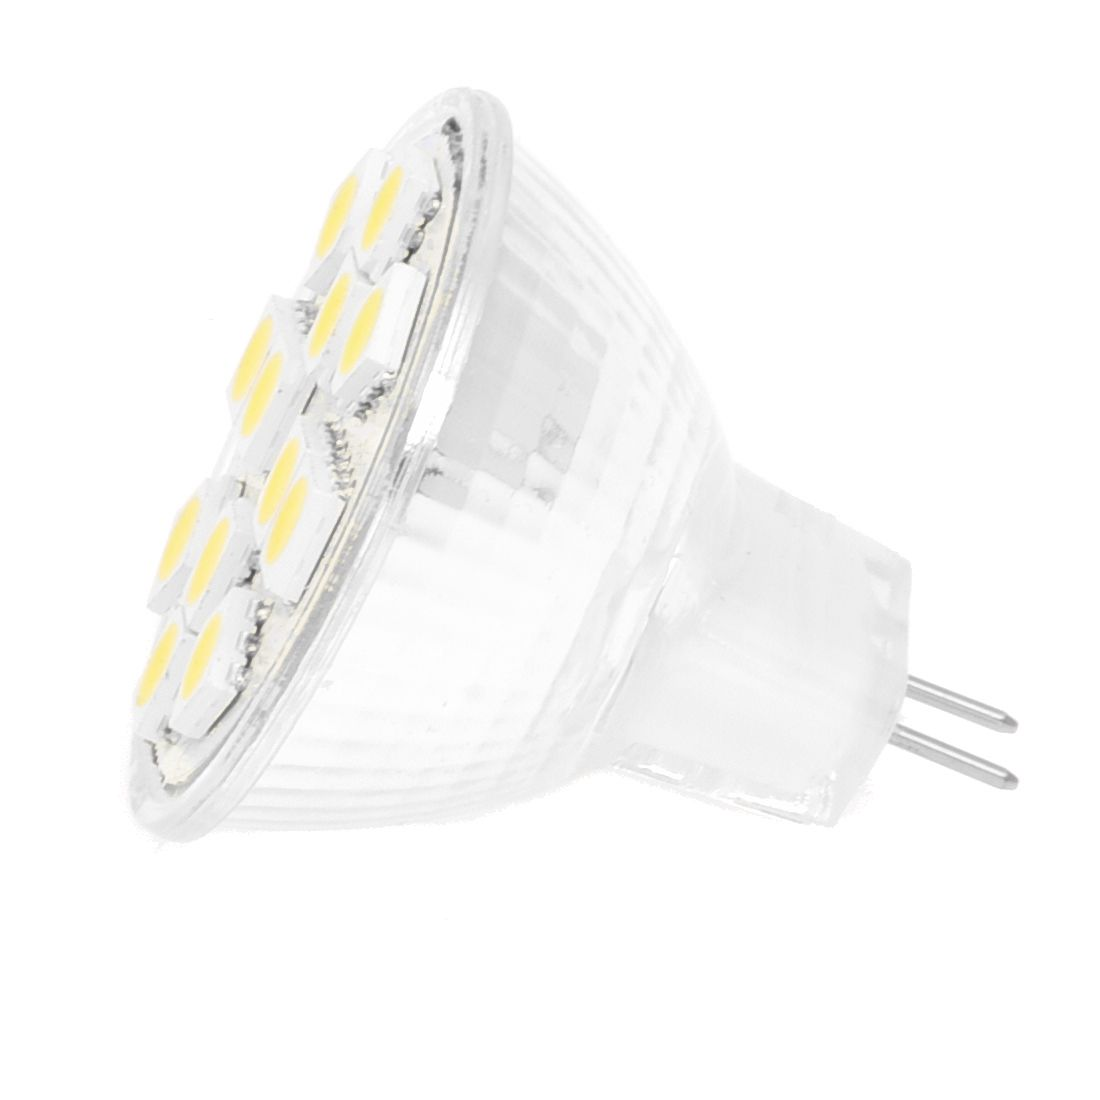 New 2W MR11 GU4 120-144LM LED Bulb 12 5050 SMD White Lamp